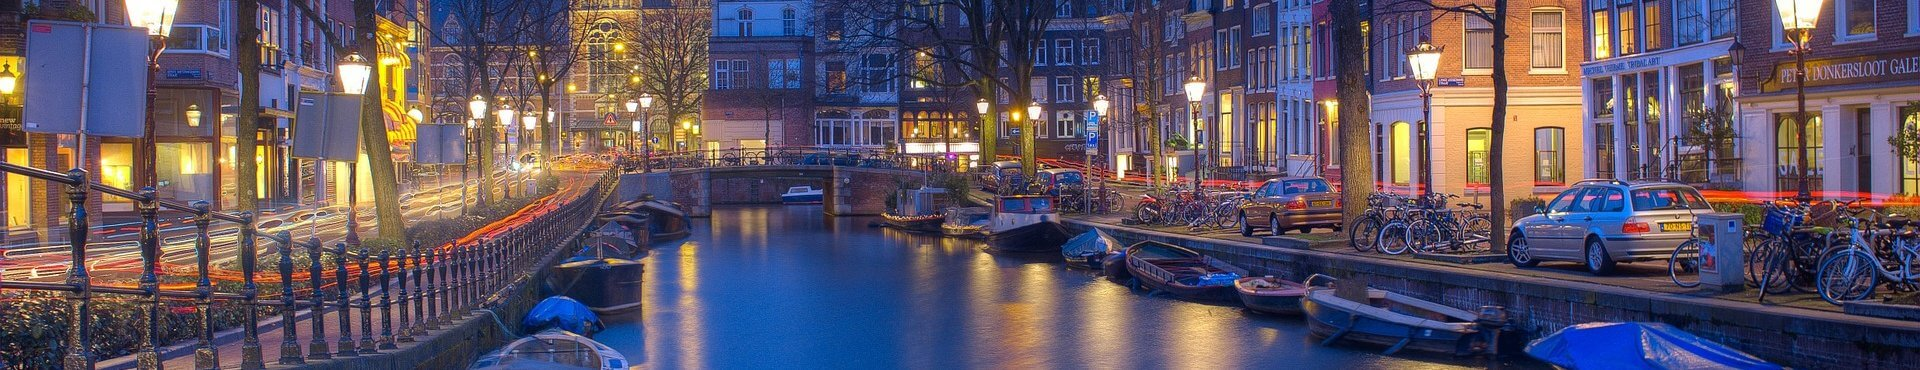 Canals Night Amsterdam